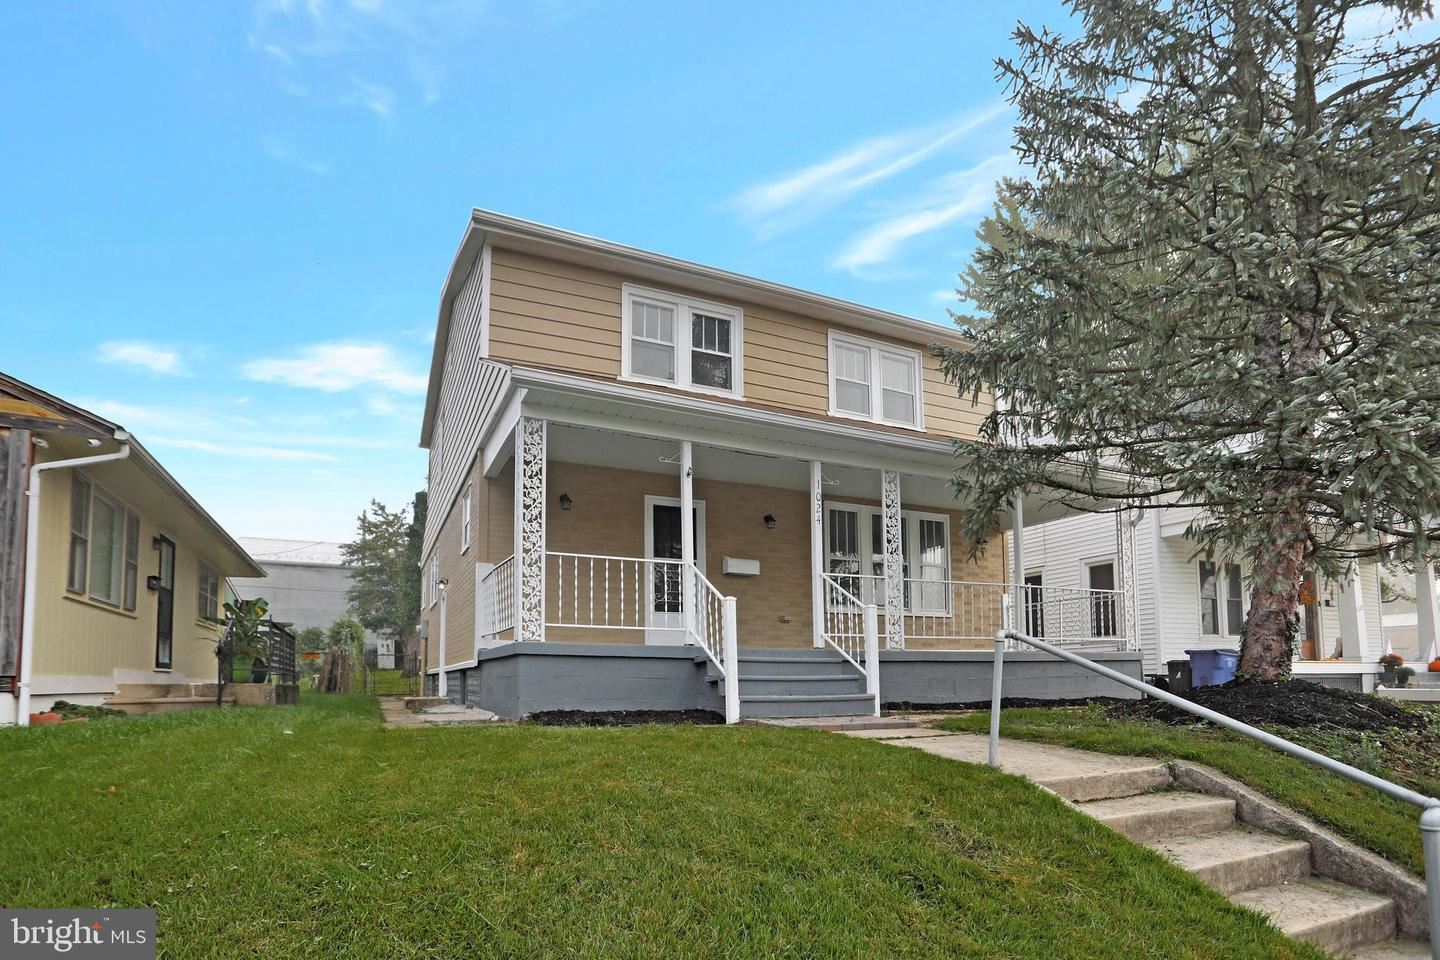 Photo of 1024 CONCORD ST, HAGERSTOWN, MD 21740 (MLS # MDWA2000239)